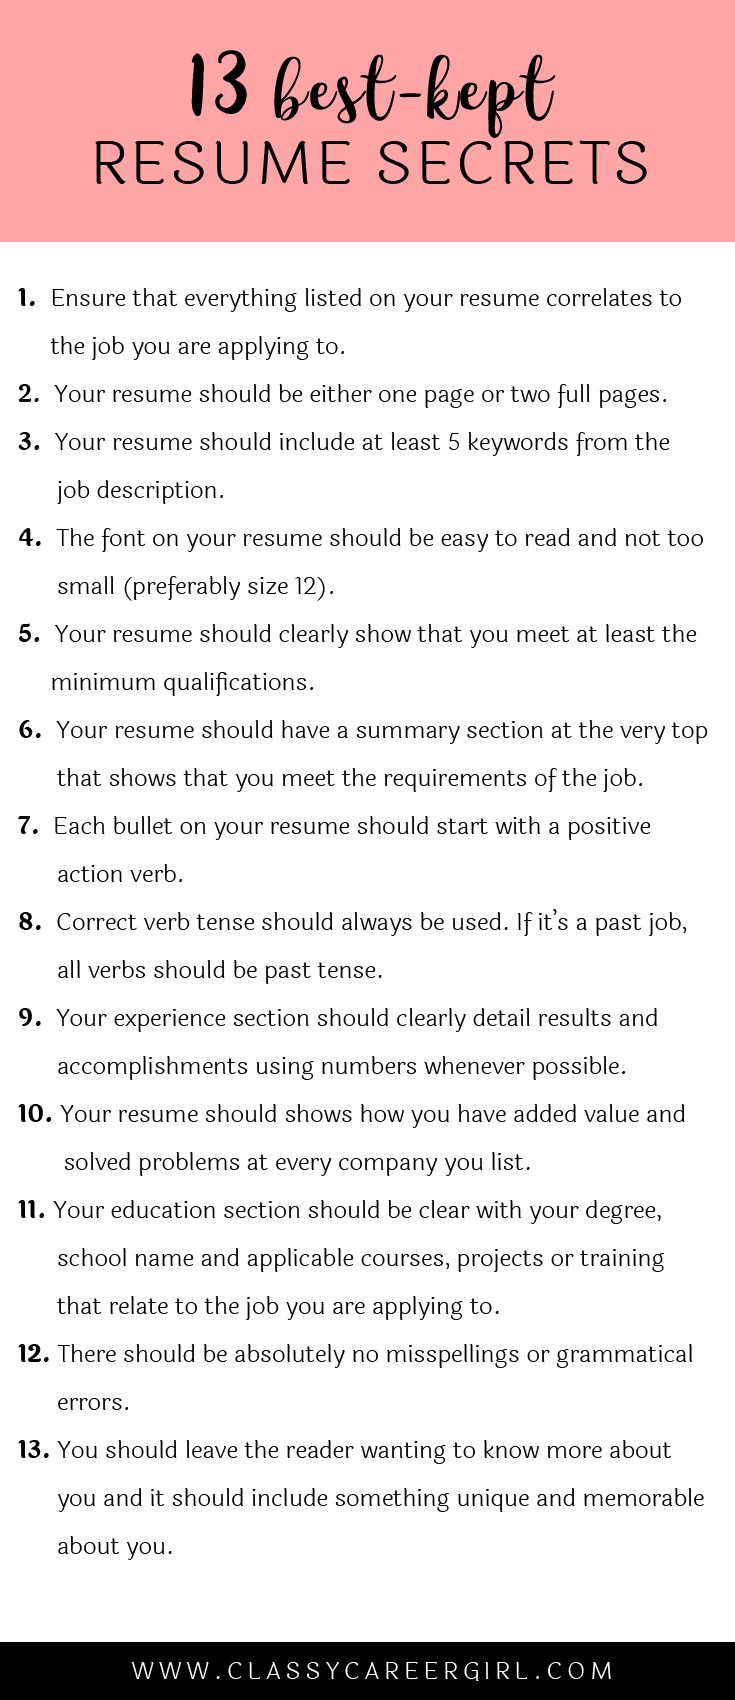 Opposenewapstandardsus  Outstanding  Ideas About Resume On Pinterest  Cv Format Resume Cv And  With Magnificent Some Hiring Managers Will Toss Your Resume Out If You Dont Know These  With Cool Account Payable Resume Also Careerbuilder Resume In Addition Resume Letters And What Is The Difference Between Cv And Resume As Well As Cvs Resume Additionally Product Manager Resume Sample From Pinterestcom With Opposenewapstandardsus  Magnificent  Ideas About Resume On Pinterest  Cv Format Resume Cv And  With Cool Some Hiring Managers Will Toss Your Resume Out If You Dont Know These  And Outstanding Account Payable Resume Also Careerbuilder Resume In Addition Resume Letters From Pinterestcom